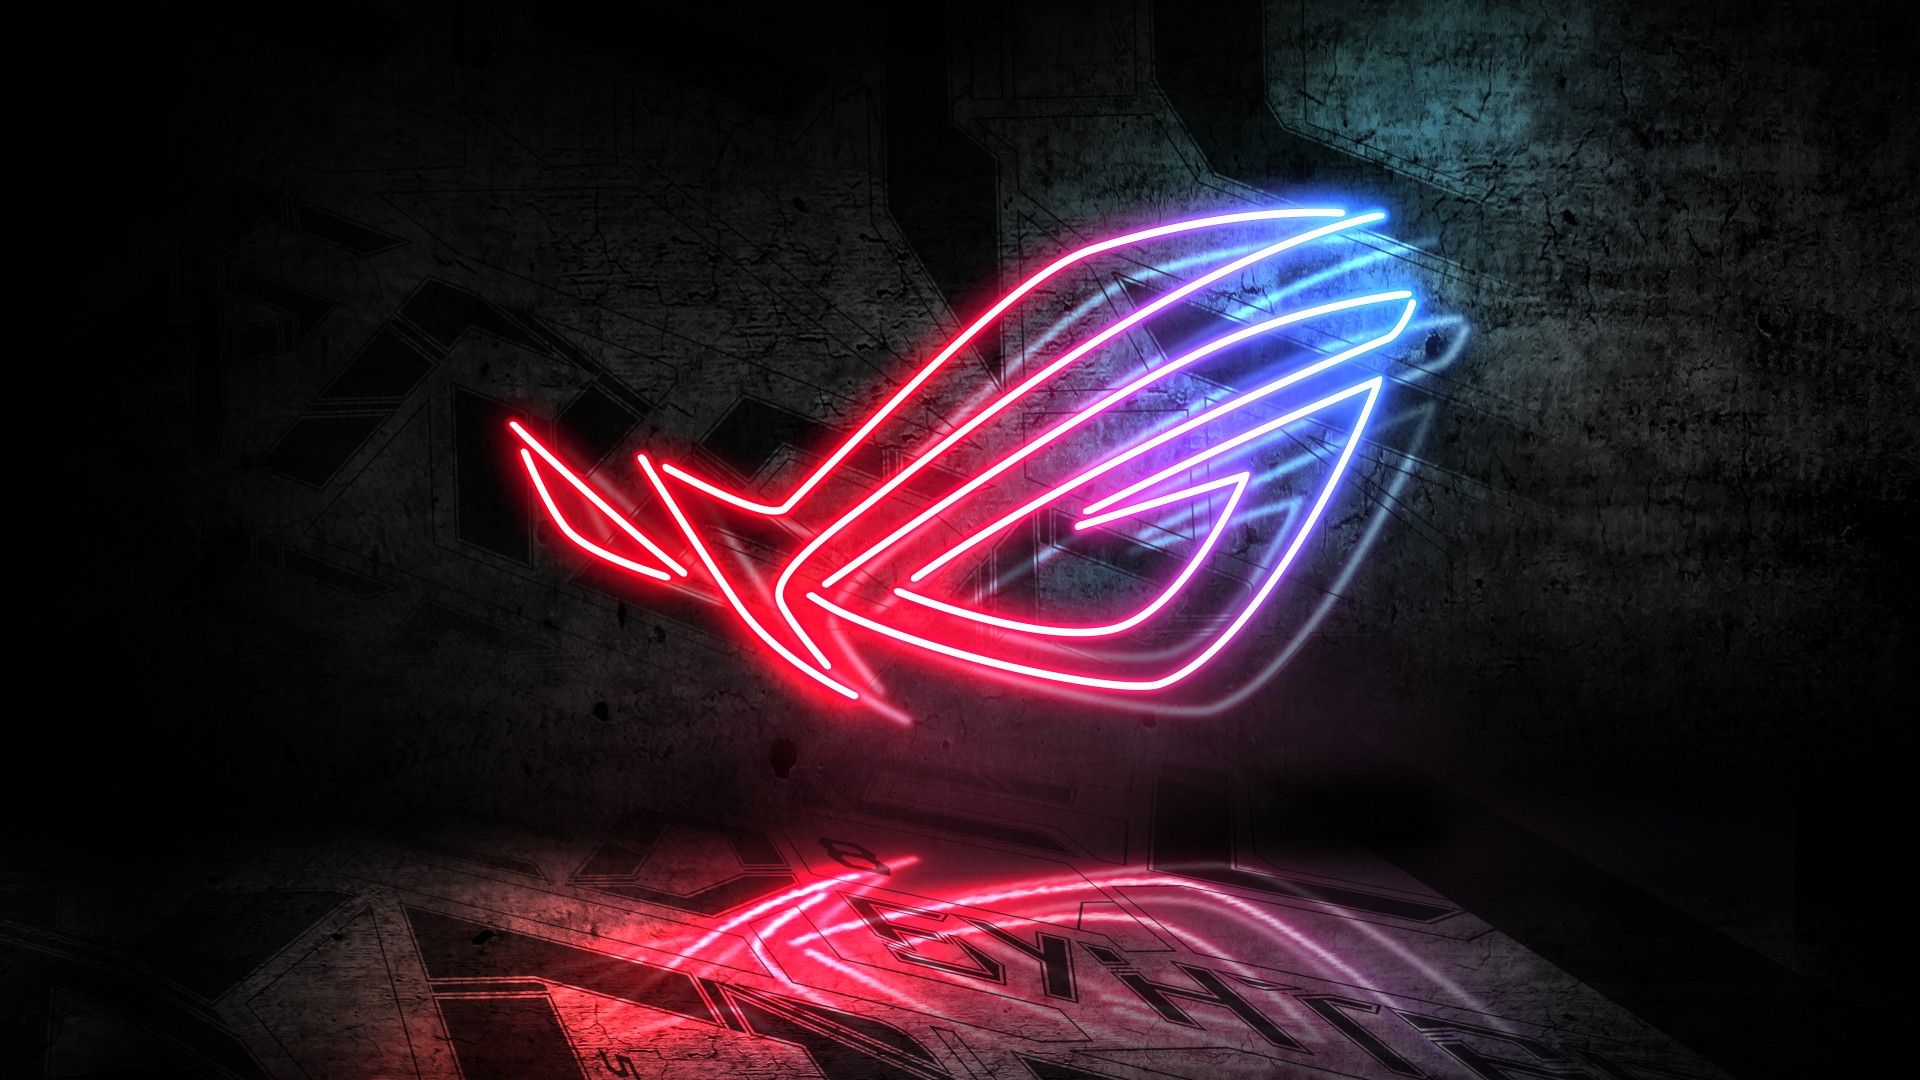 Asus 1920x1080 Neon Logo Gaming Wallpapers Hd Iphone Wallpaper Hipster